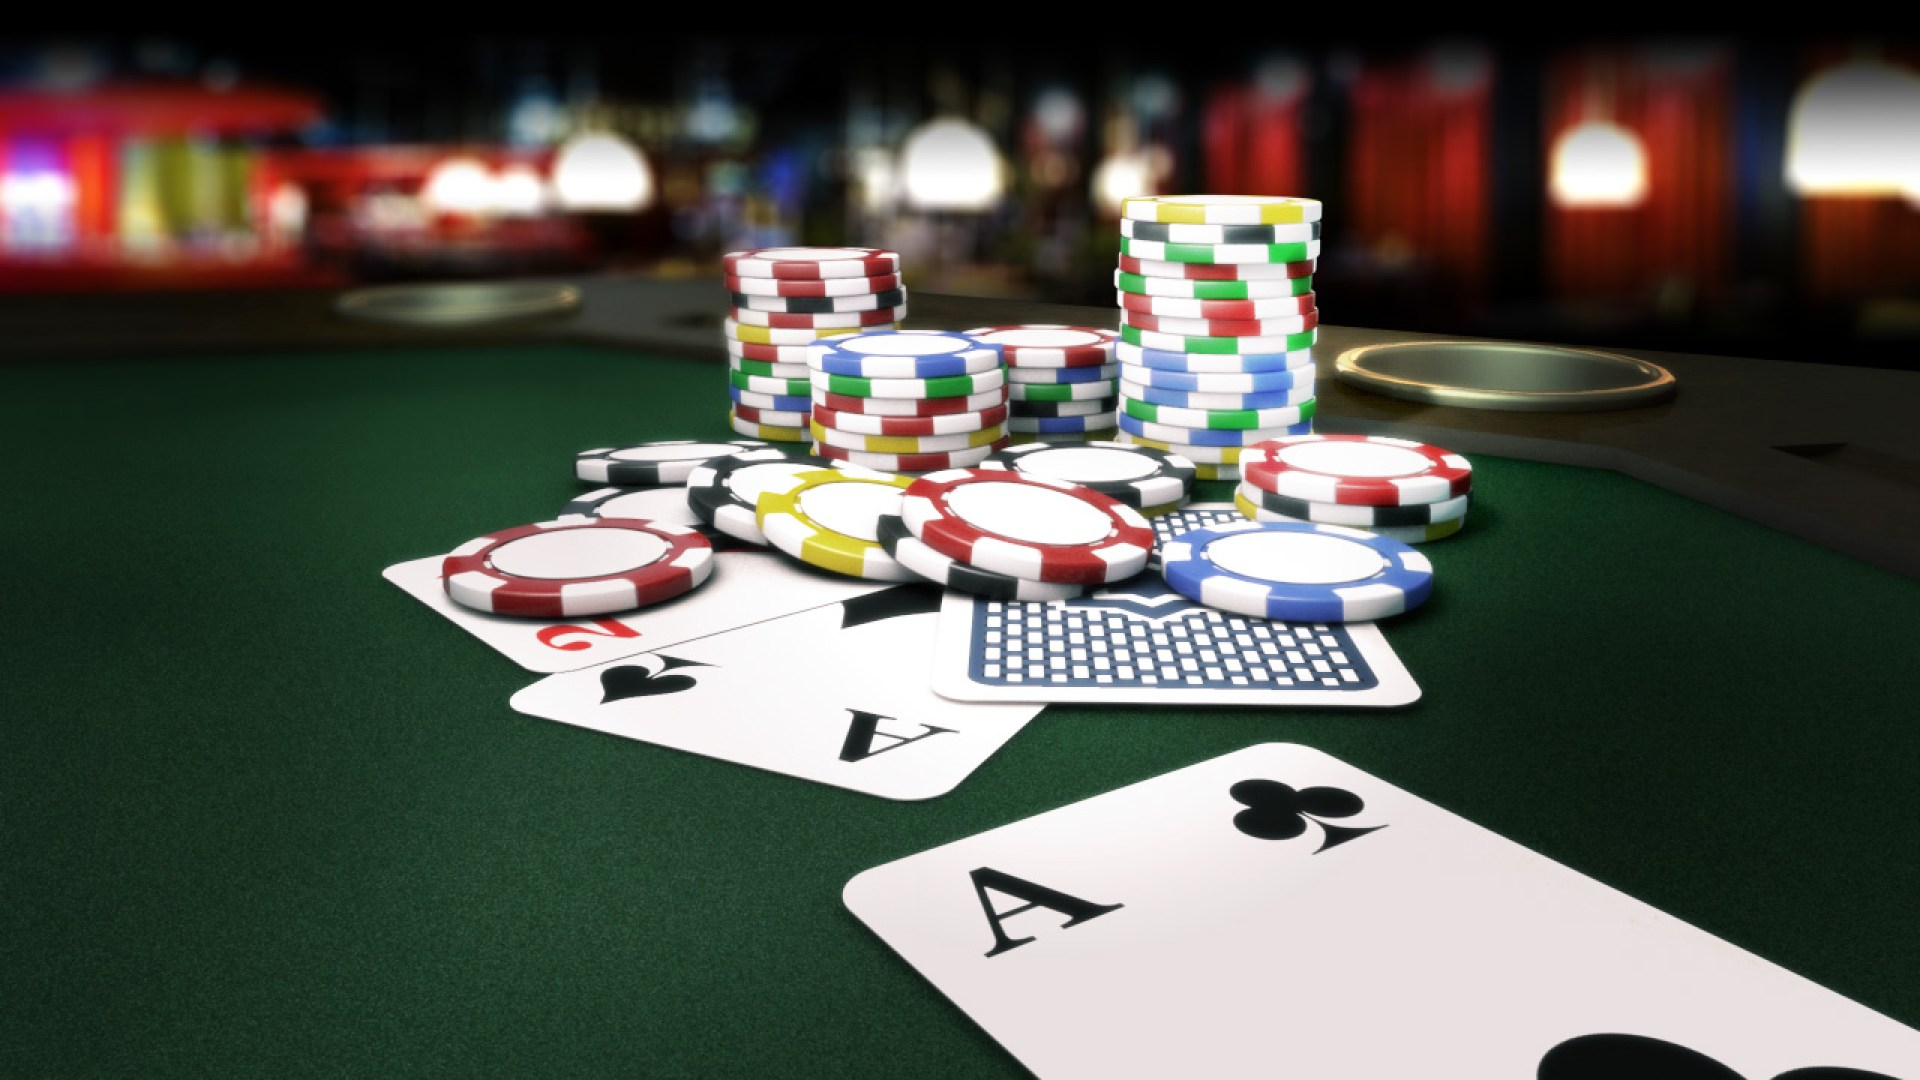 Dialogue over taking part in casino games about mobiles